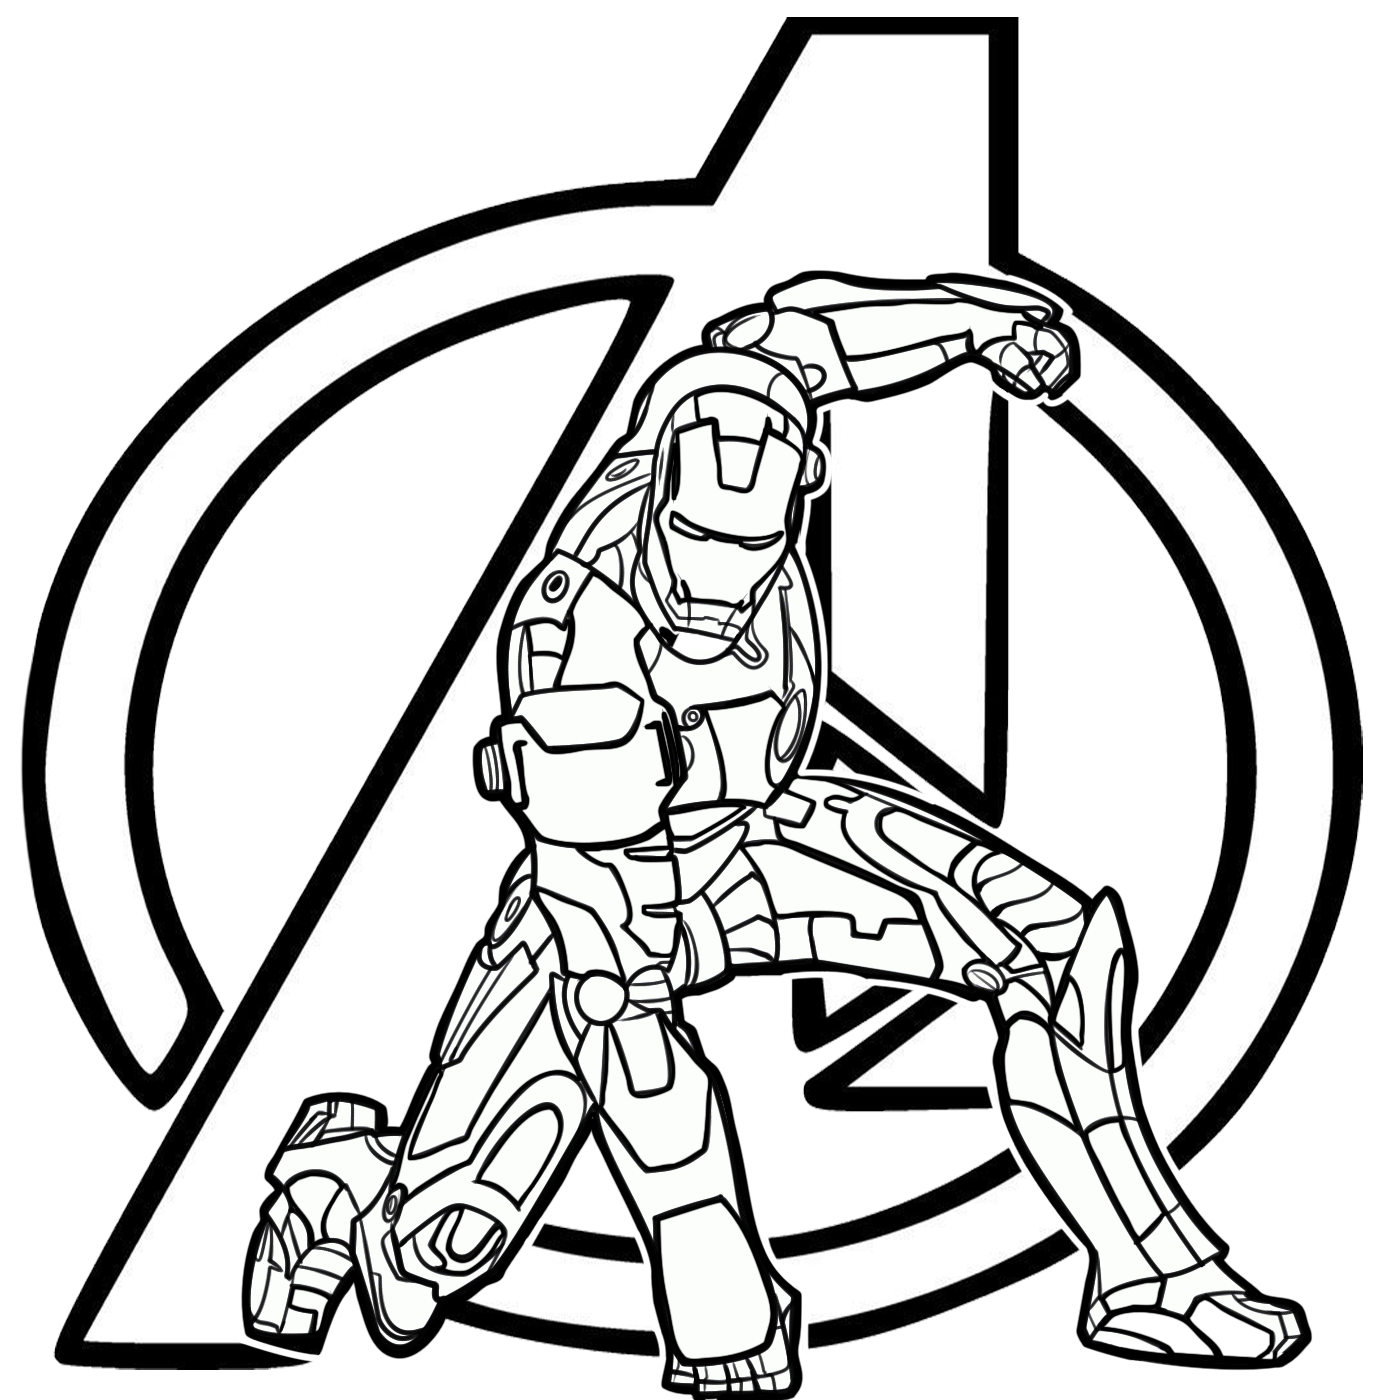 ironman printables top 20 free printable iron man coloring pages online ironman printables 1 1